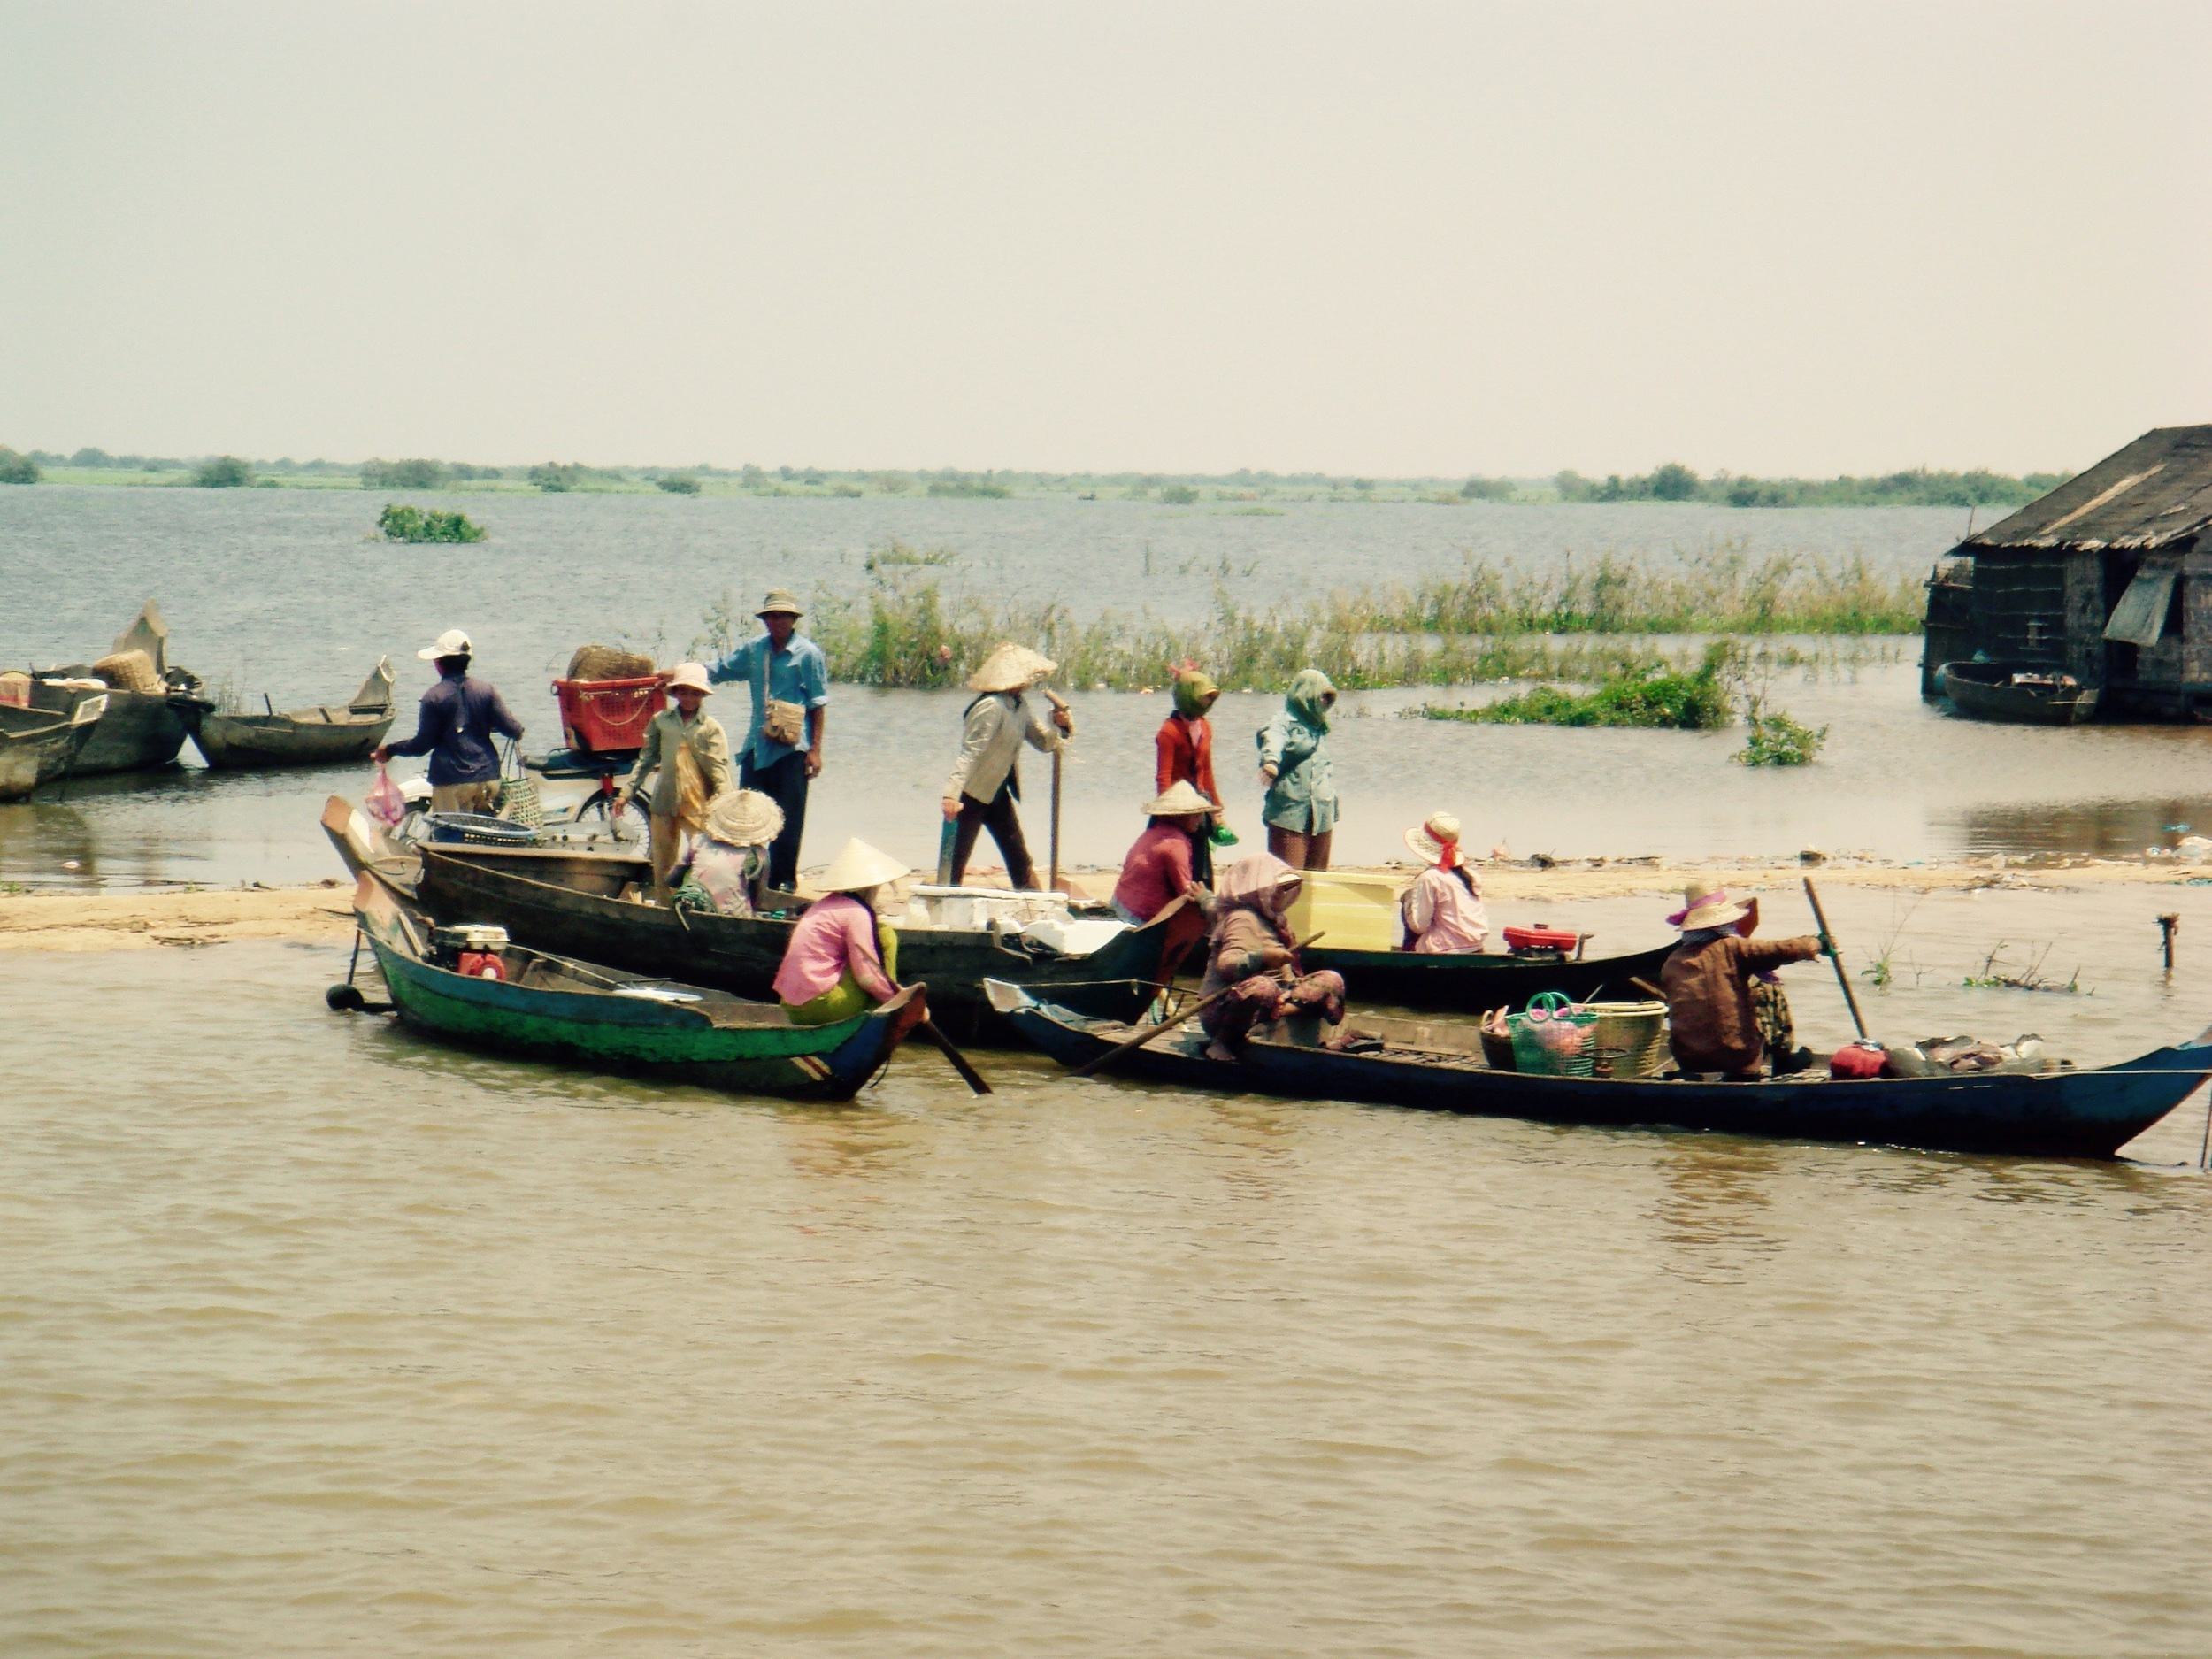 A sandbar in the Mekong River, Cambodia where boats gather around lunchtime